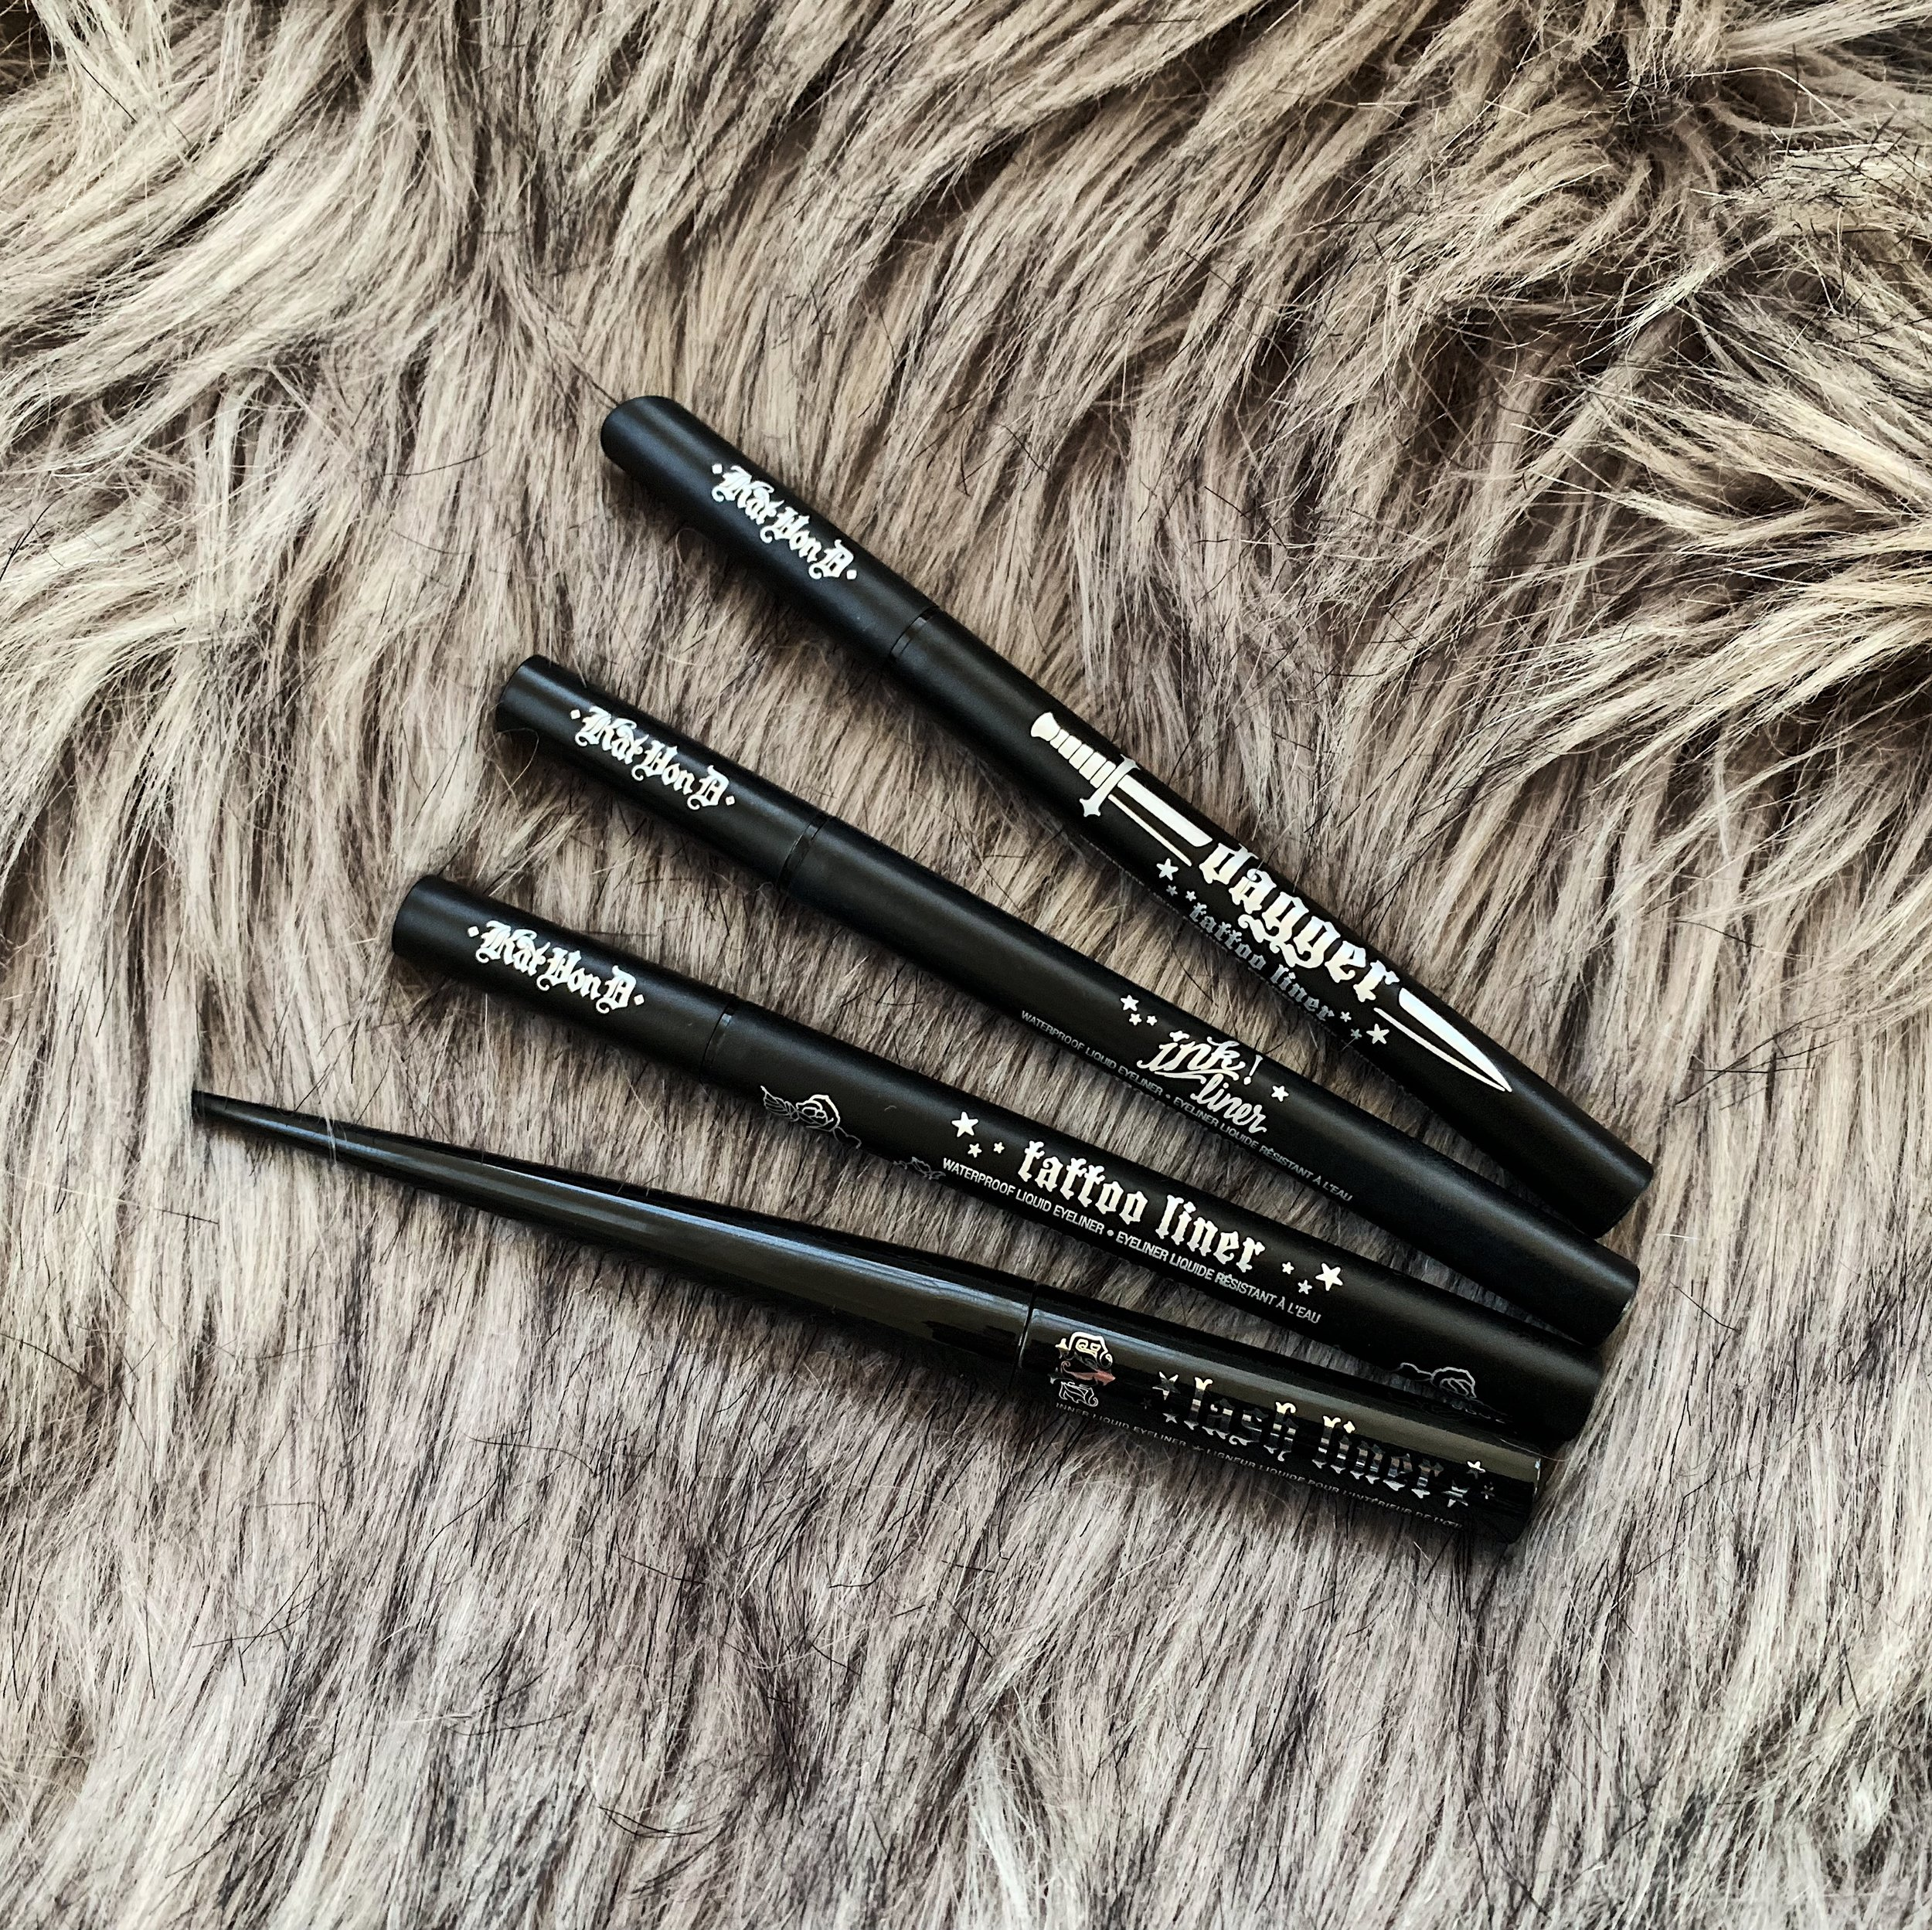 Élégant eyeliner - I have very sensitive eyes and allergies 365 days a year! If it's the case for you too, you MUST try these babies by Kat Von D! I can go through an entire hour workout at the gym and my eyeliner doesn't even budge! It's wild! I love them so much that I have all four options, but if you're looking for the one & only, I'd go with the tattoo liner or ink liner.Click here to shop.